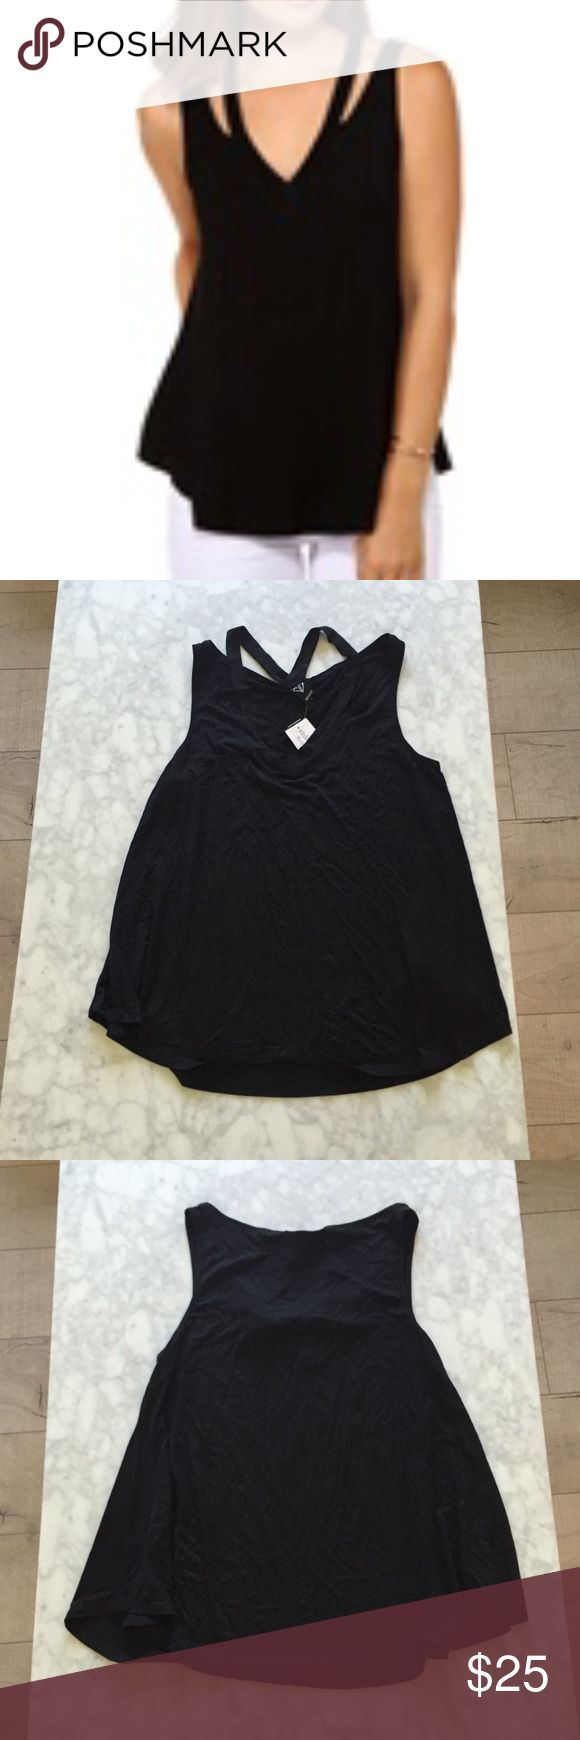 Windsor Strappy Top *NEW* Windsor black Strappy top! Size small! 🚫NO TRADES🚫 Tops